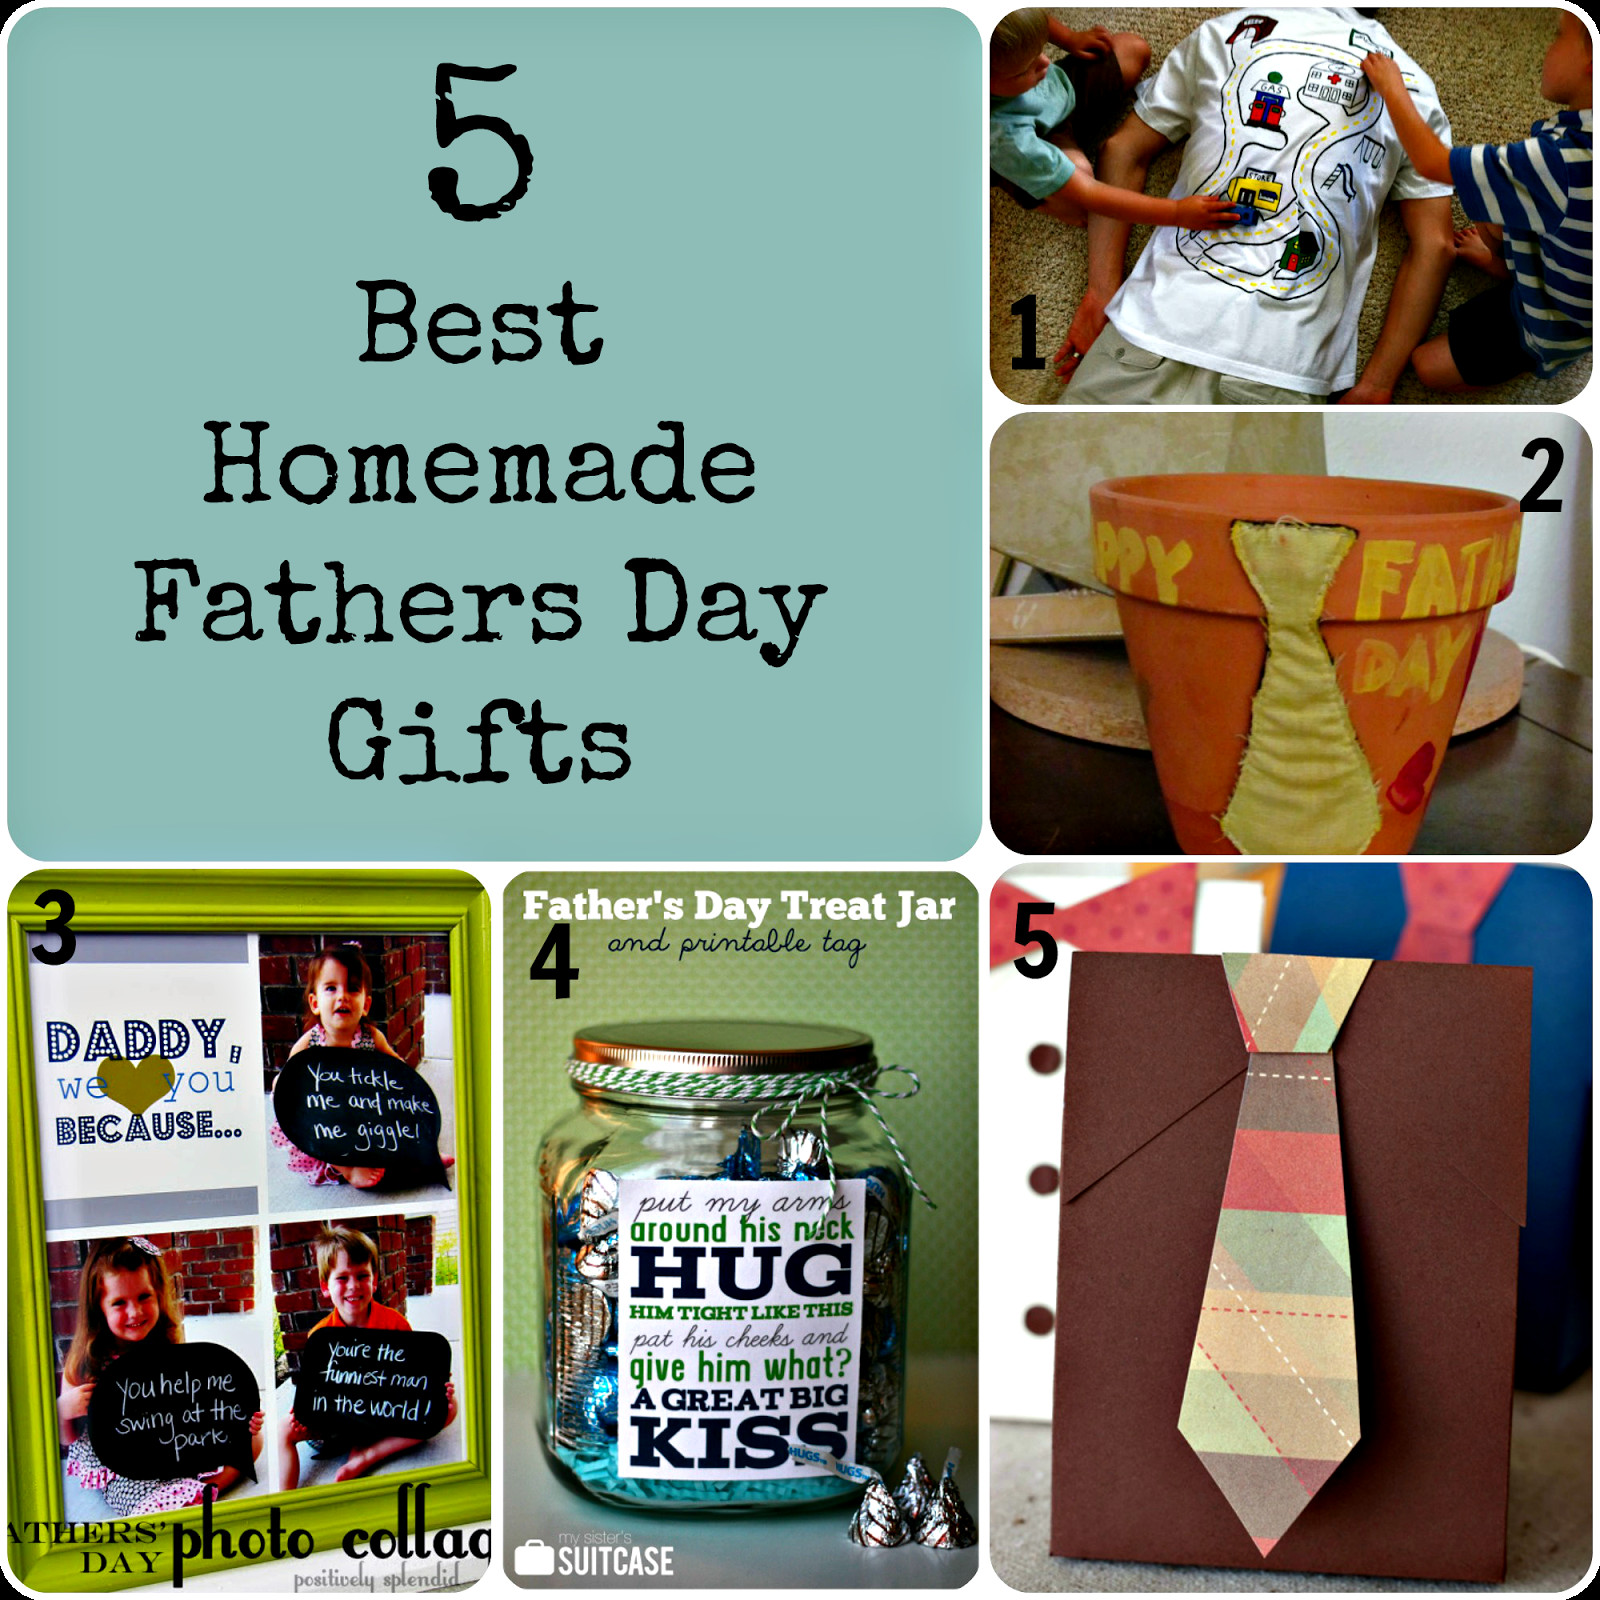 Best ideas about Homemade Gift Ideas For Daddy . Save or Pin 5 Best homemade Fathers Day Gifts Now.